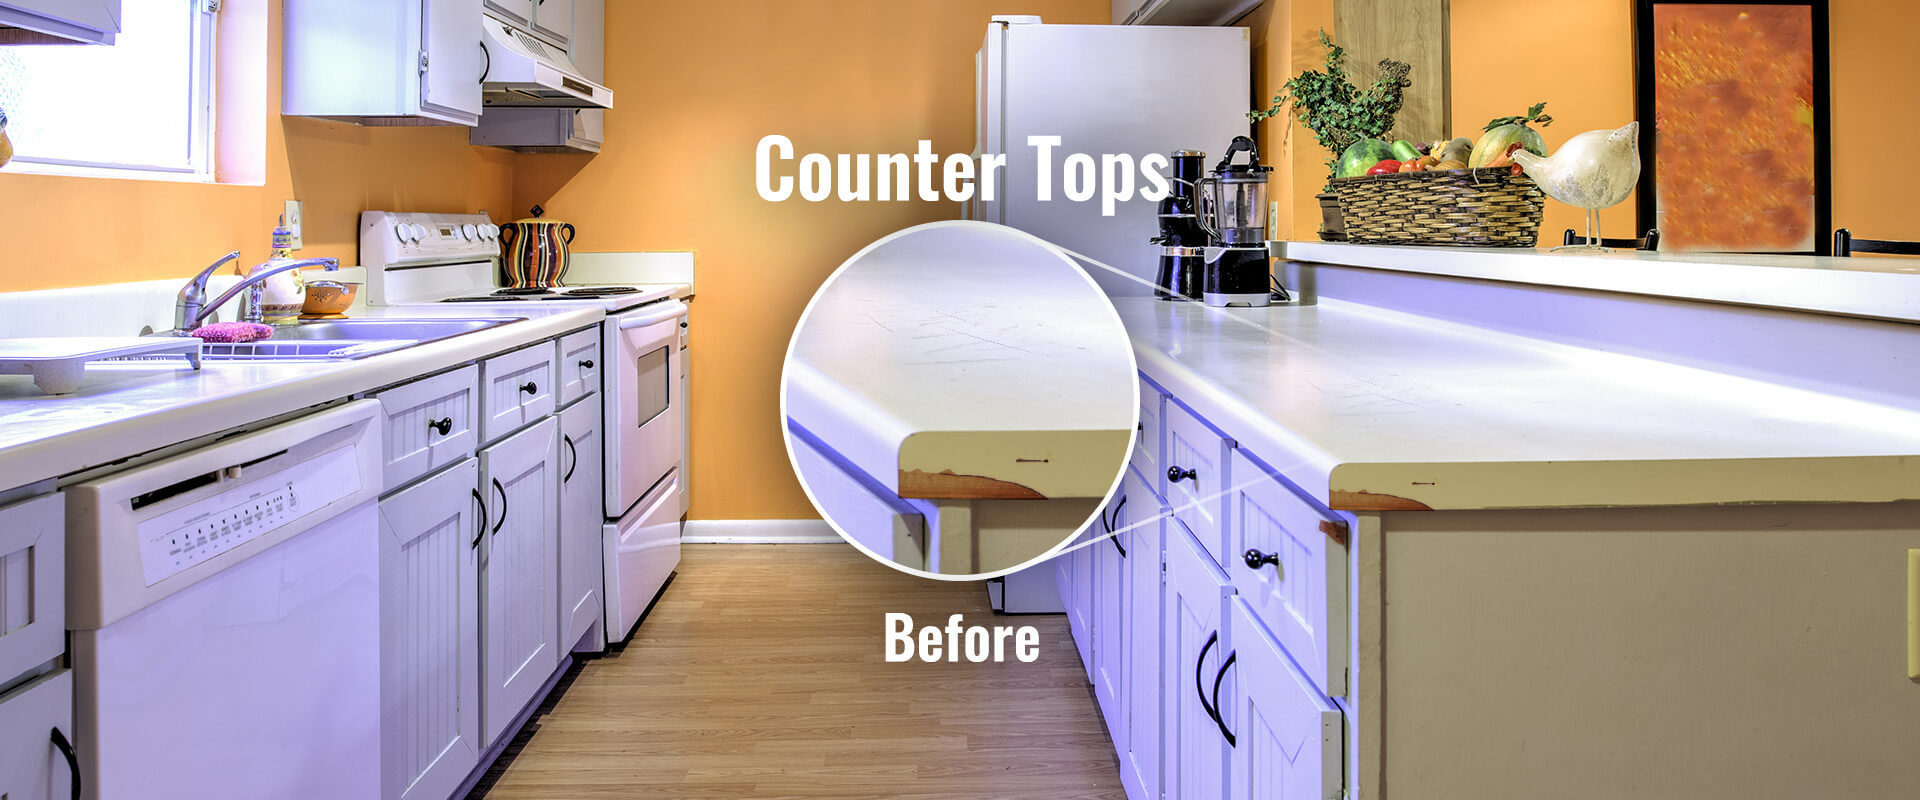 First slide, laminate countertop with a chipped corner.